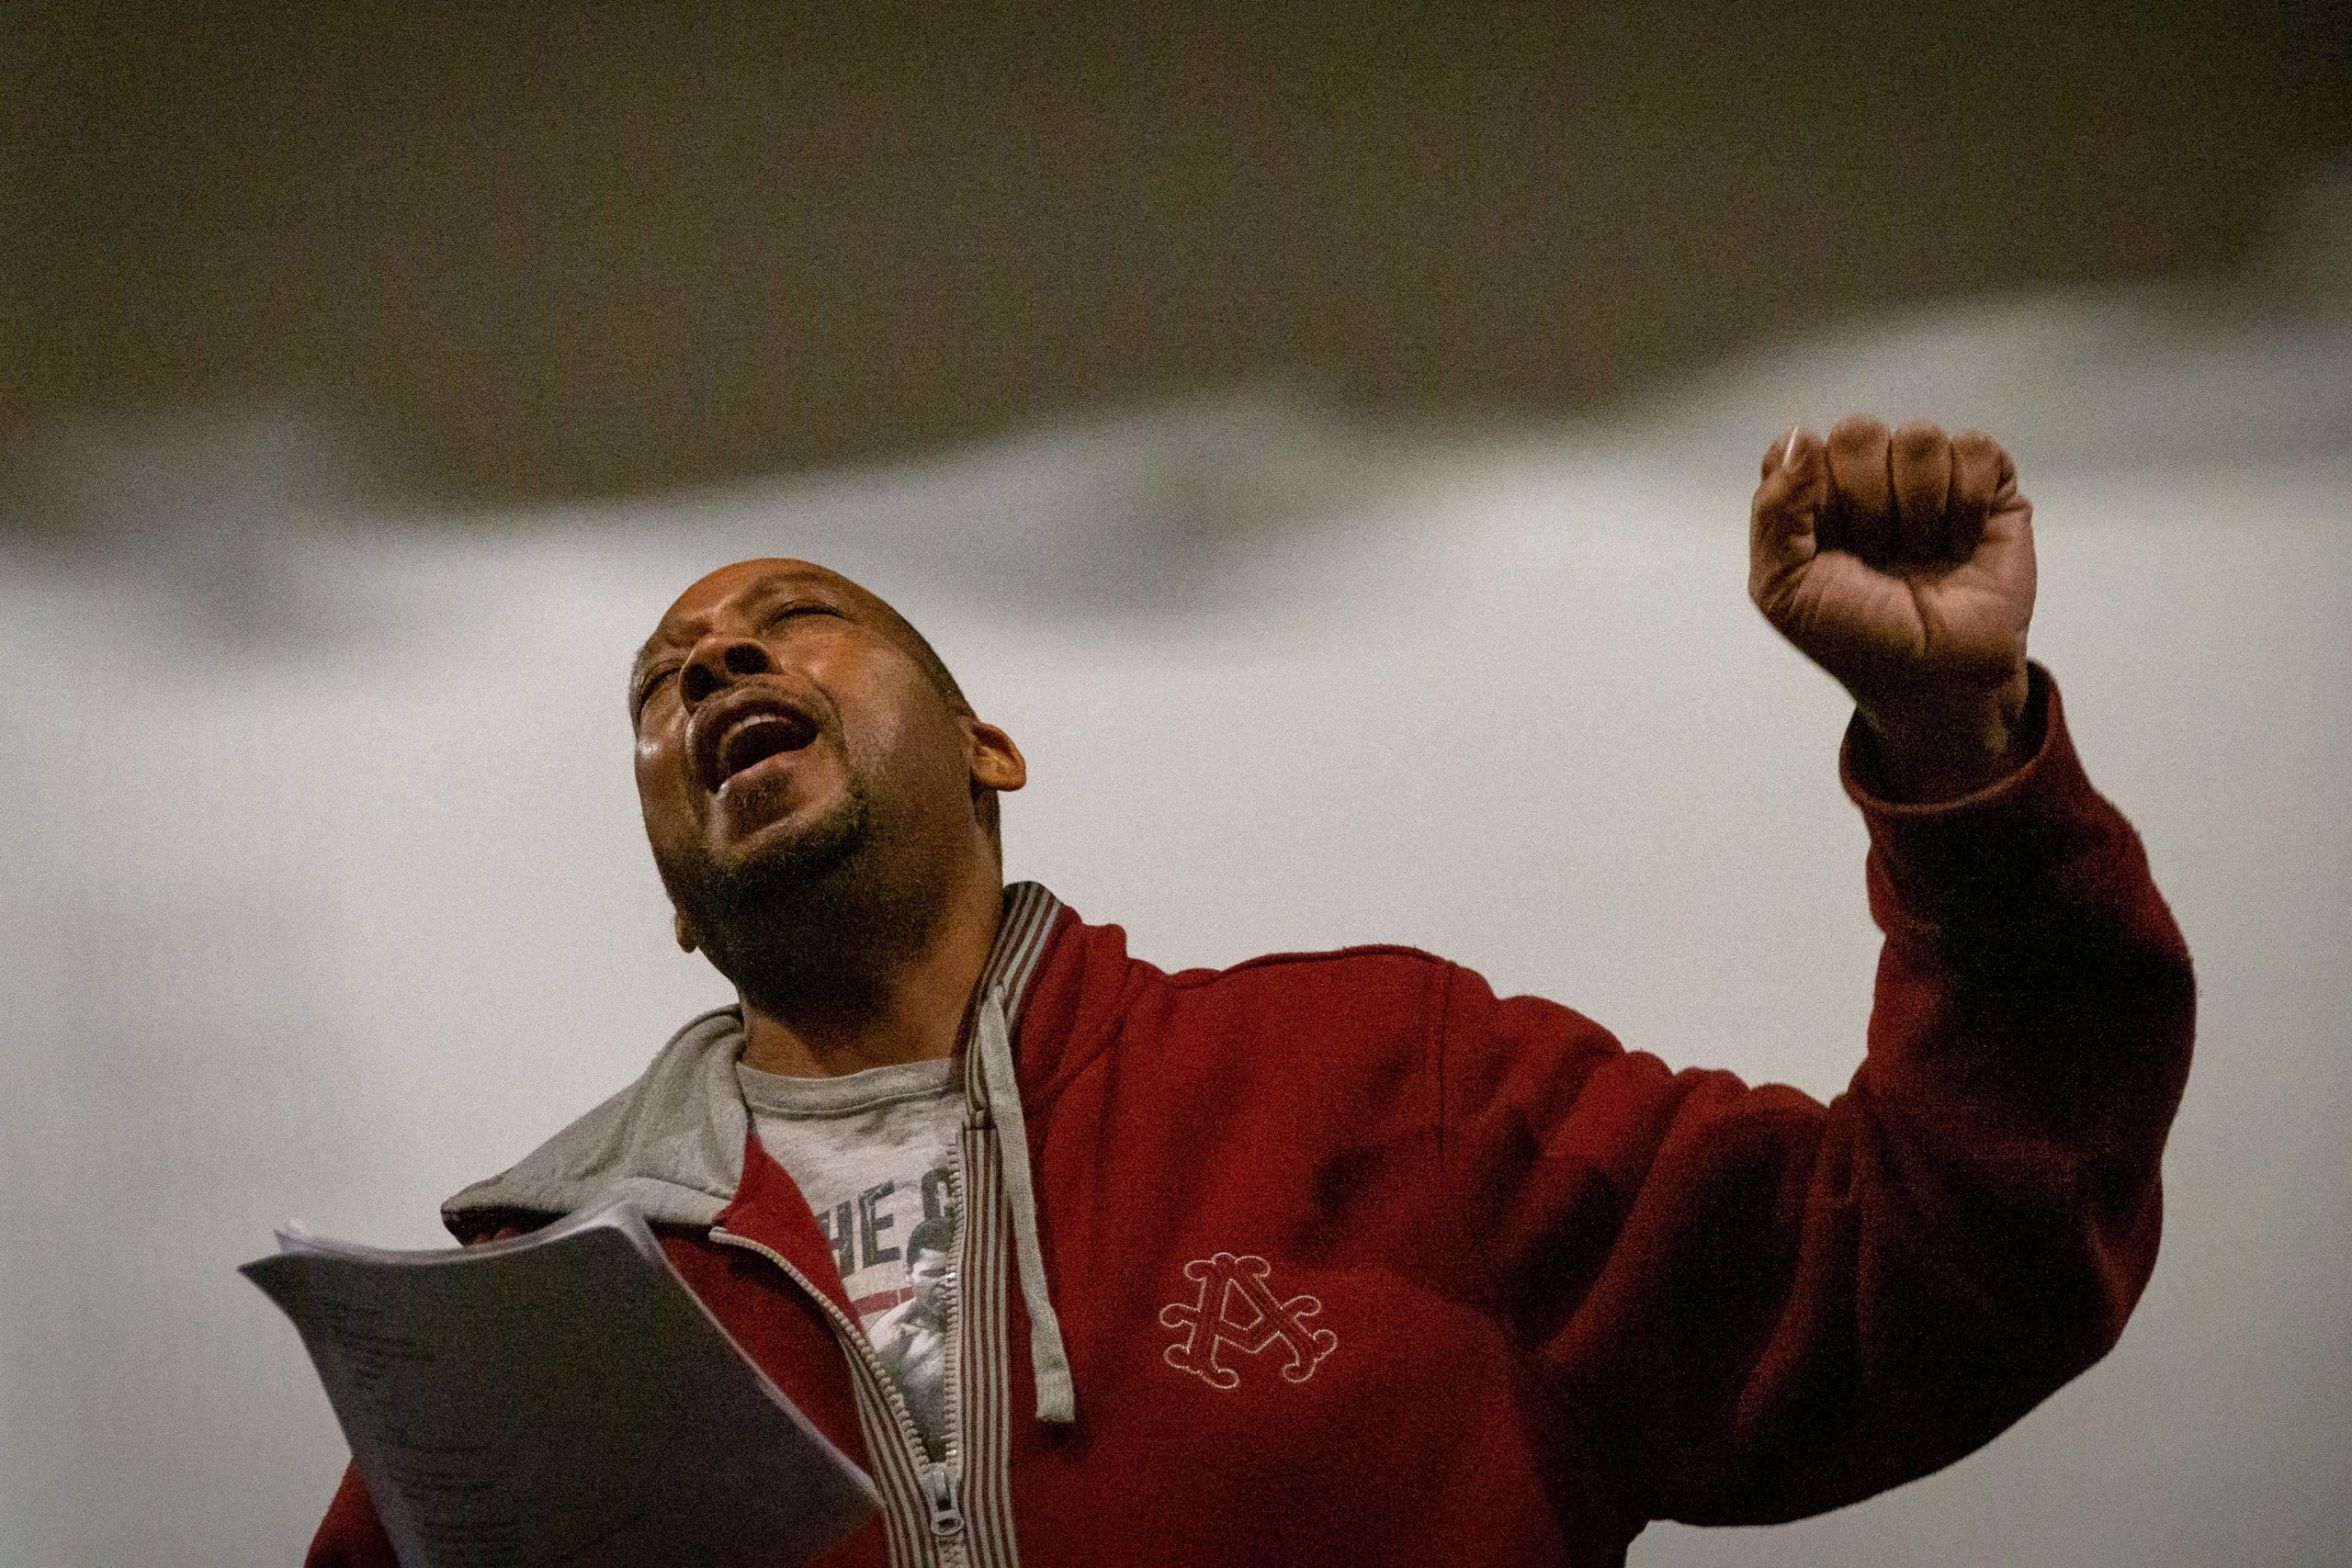 Vocalist Tony Howard belts a note during a rehearsal at Su Teatro Cultural and Performing Arts Center on Feb. 3, 2020.